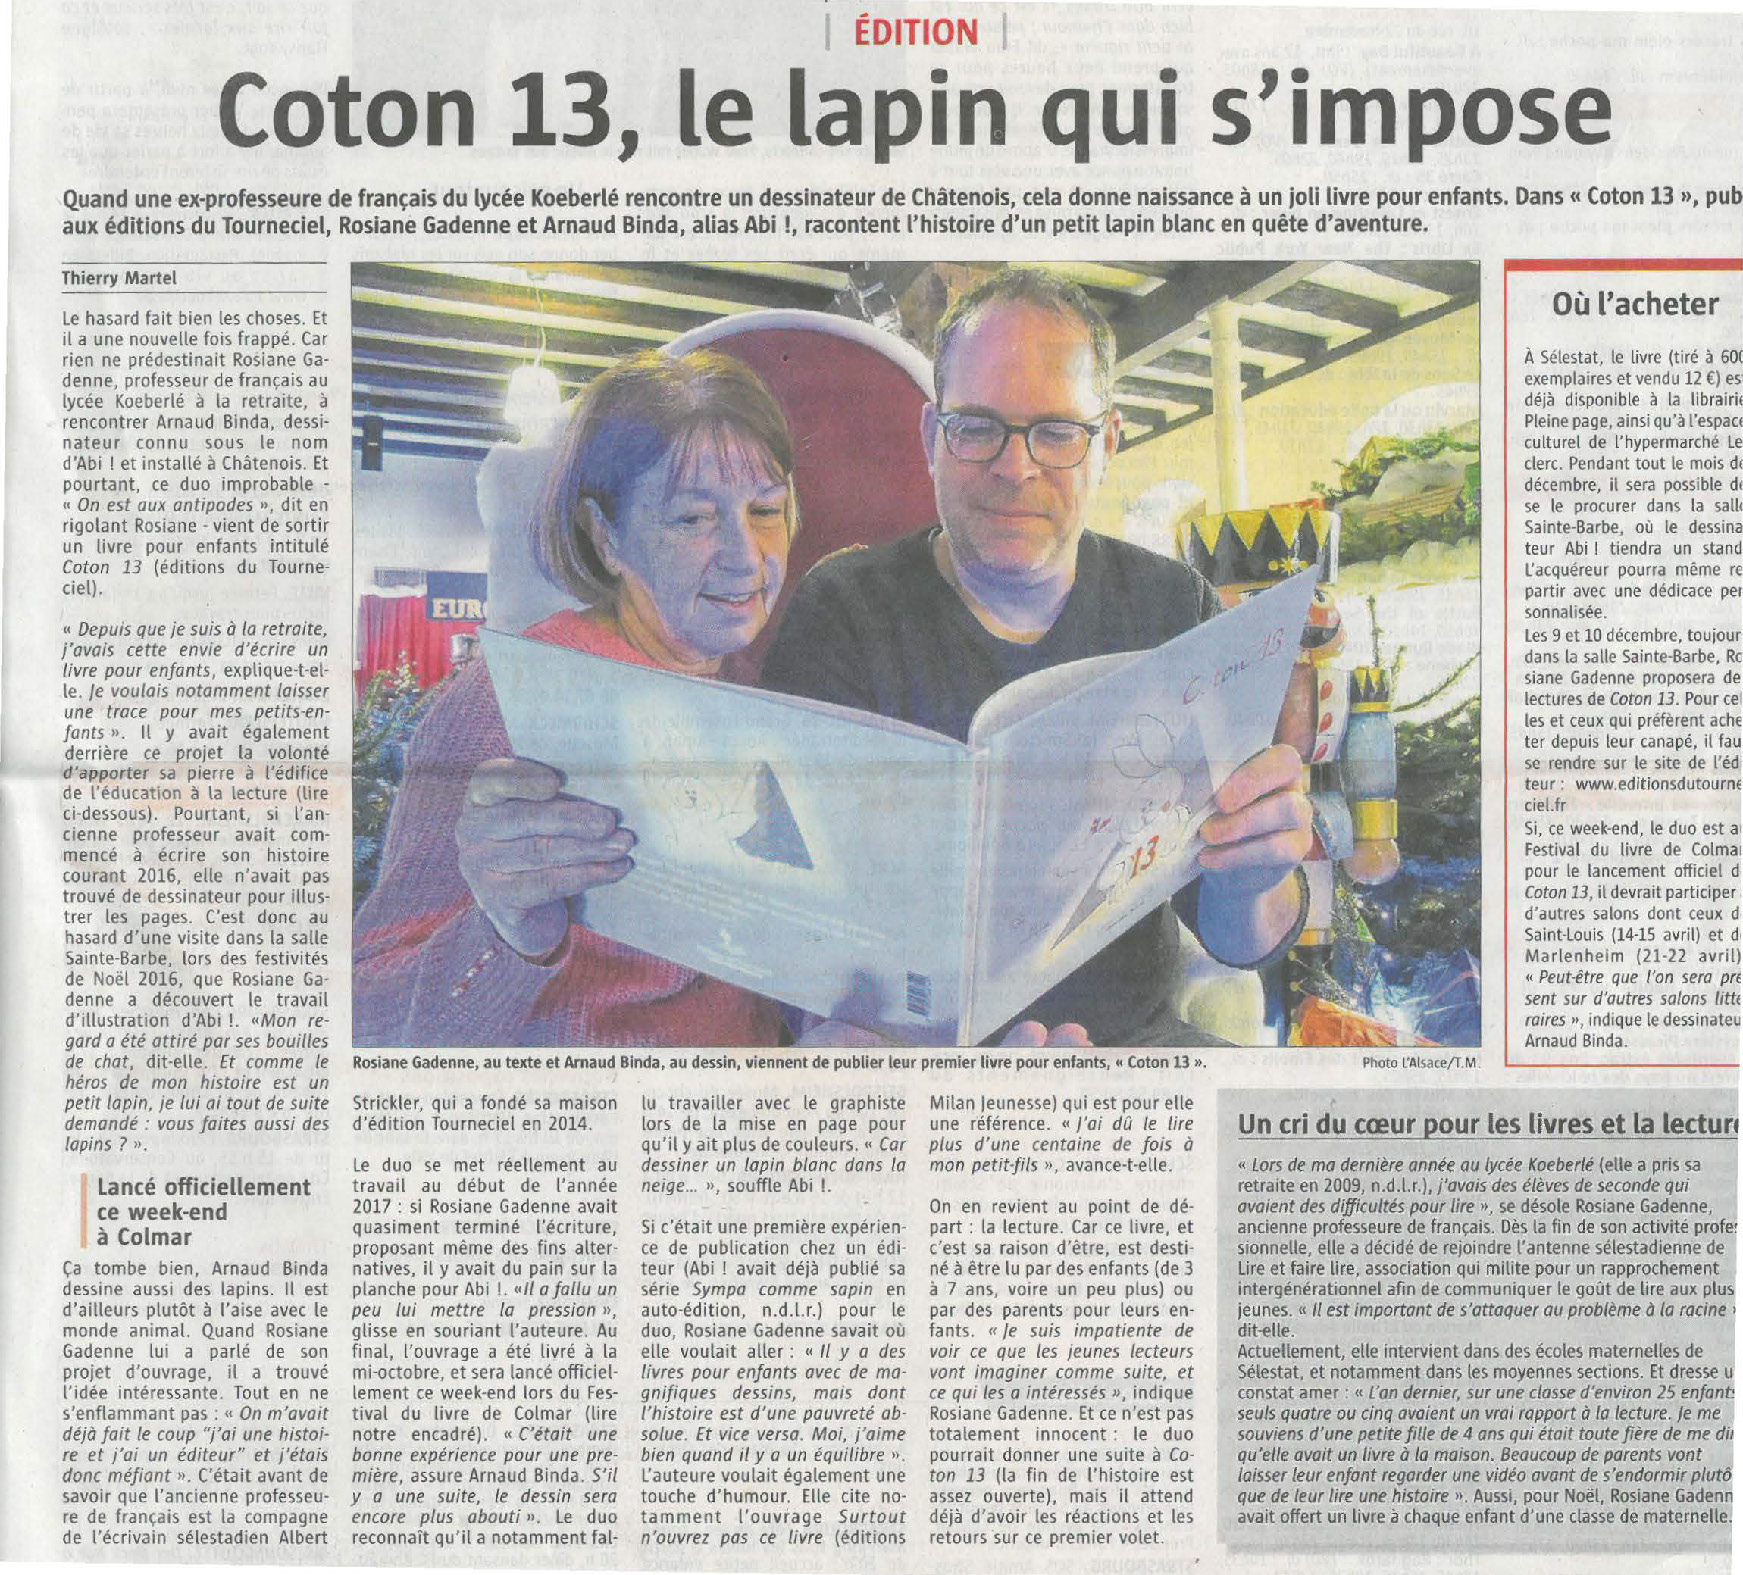 Article du Journal L'Alsace de Thierry Martel. Coton 13 aux Editions du Tourneciel.